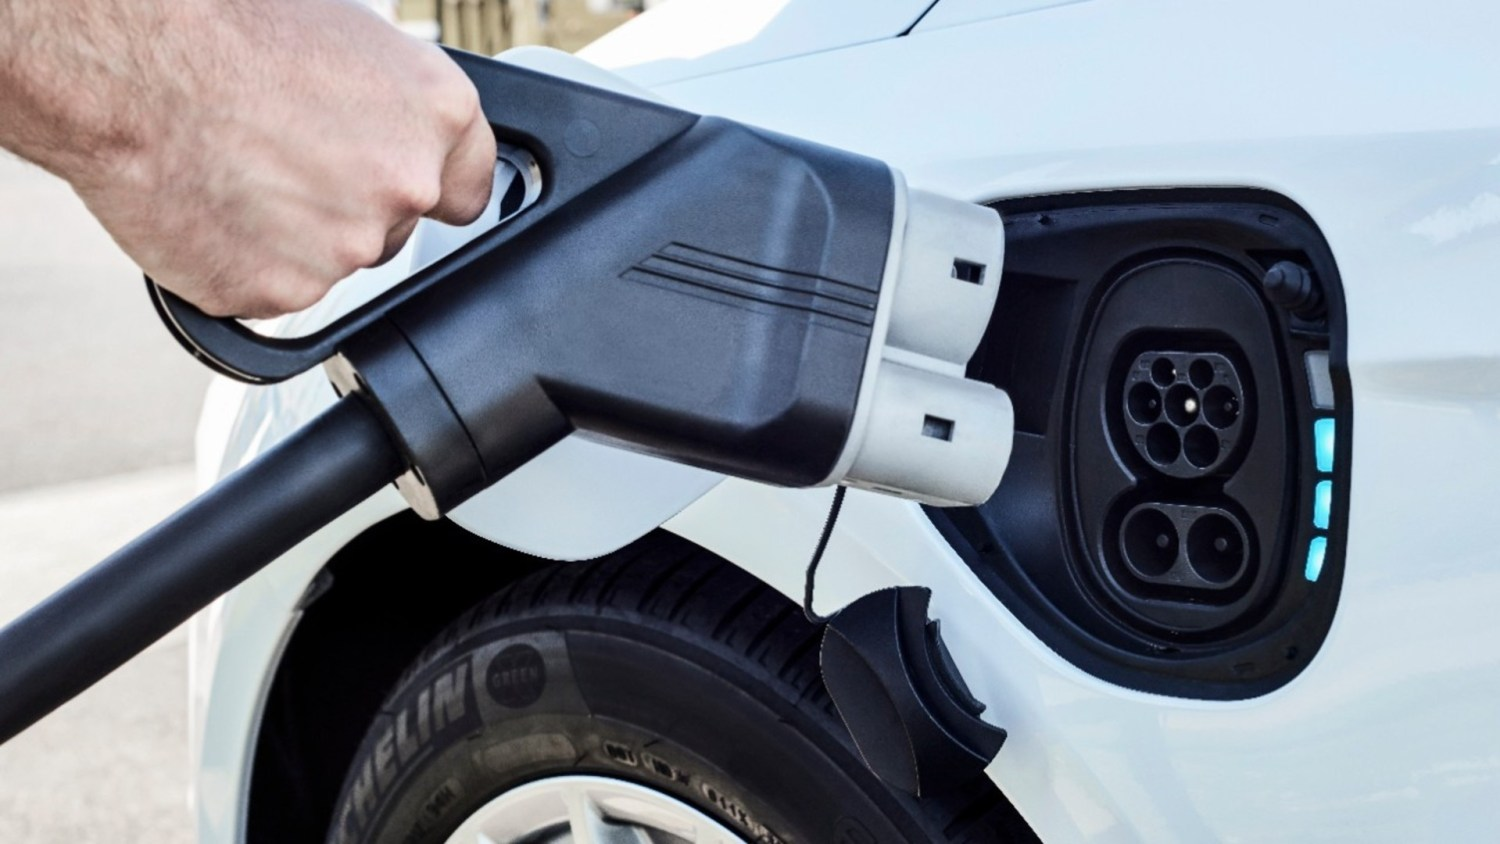 The dangers of charging electric cars with extension leads